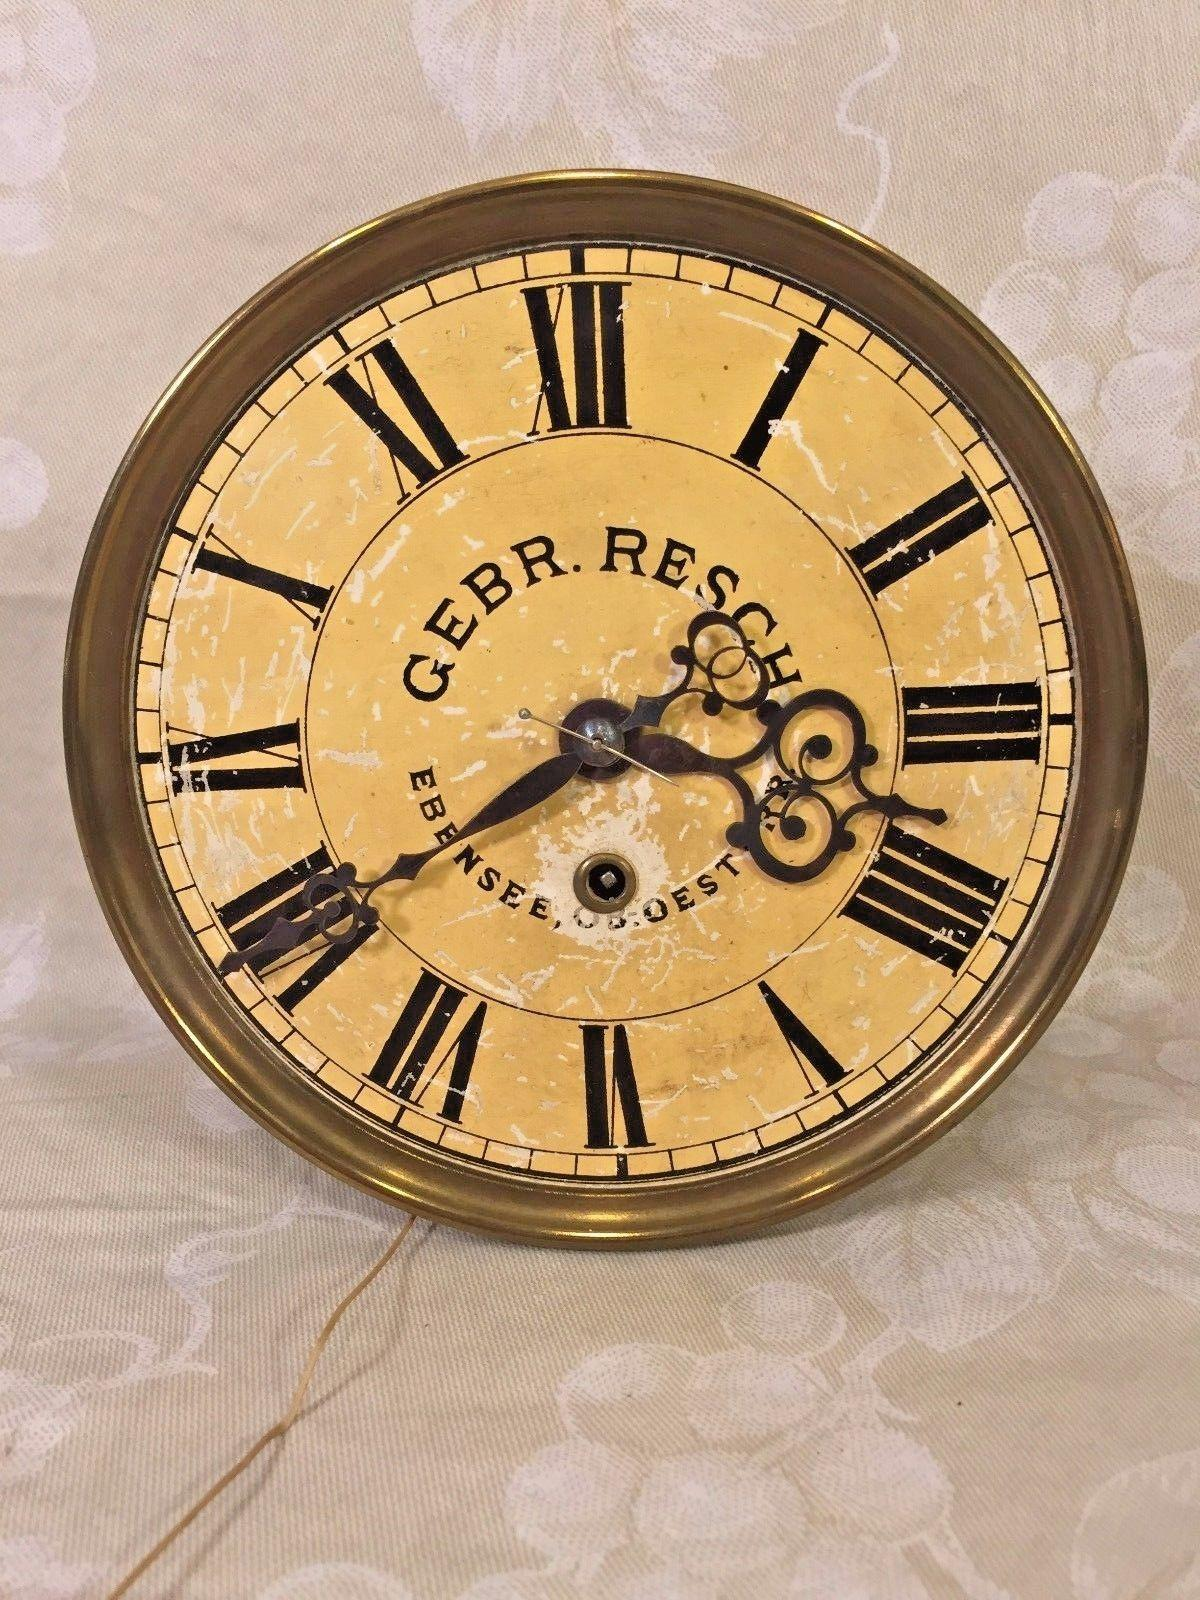 Antique gebrueder resch free swinger wall clock time only great roll over large image to magnify click large image to zoom amipublicfo Image collections